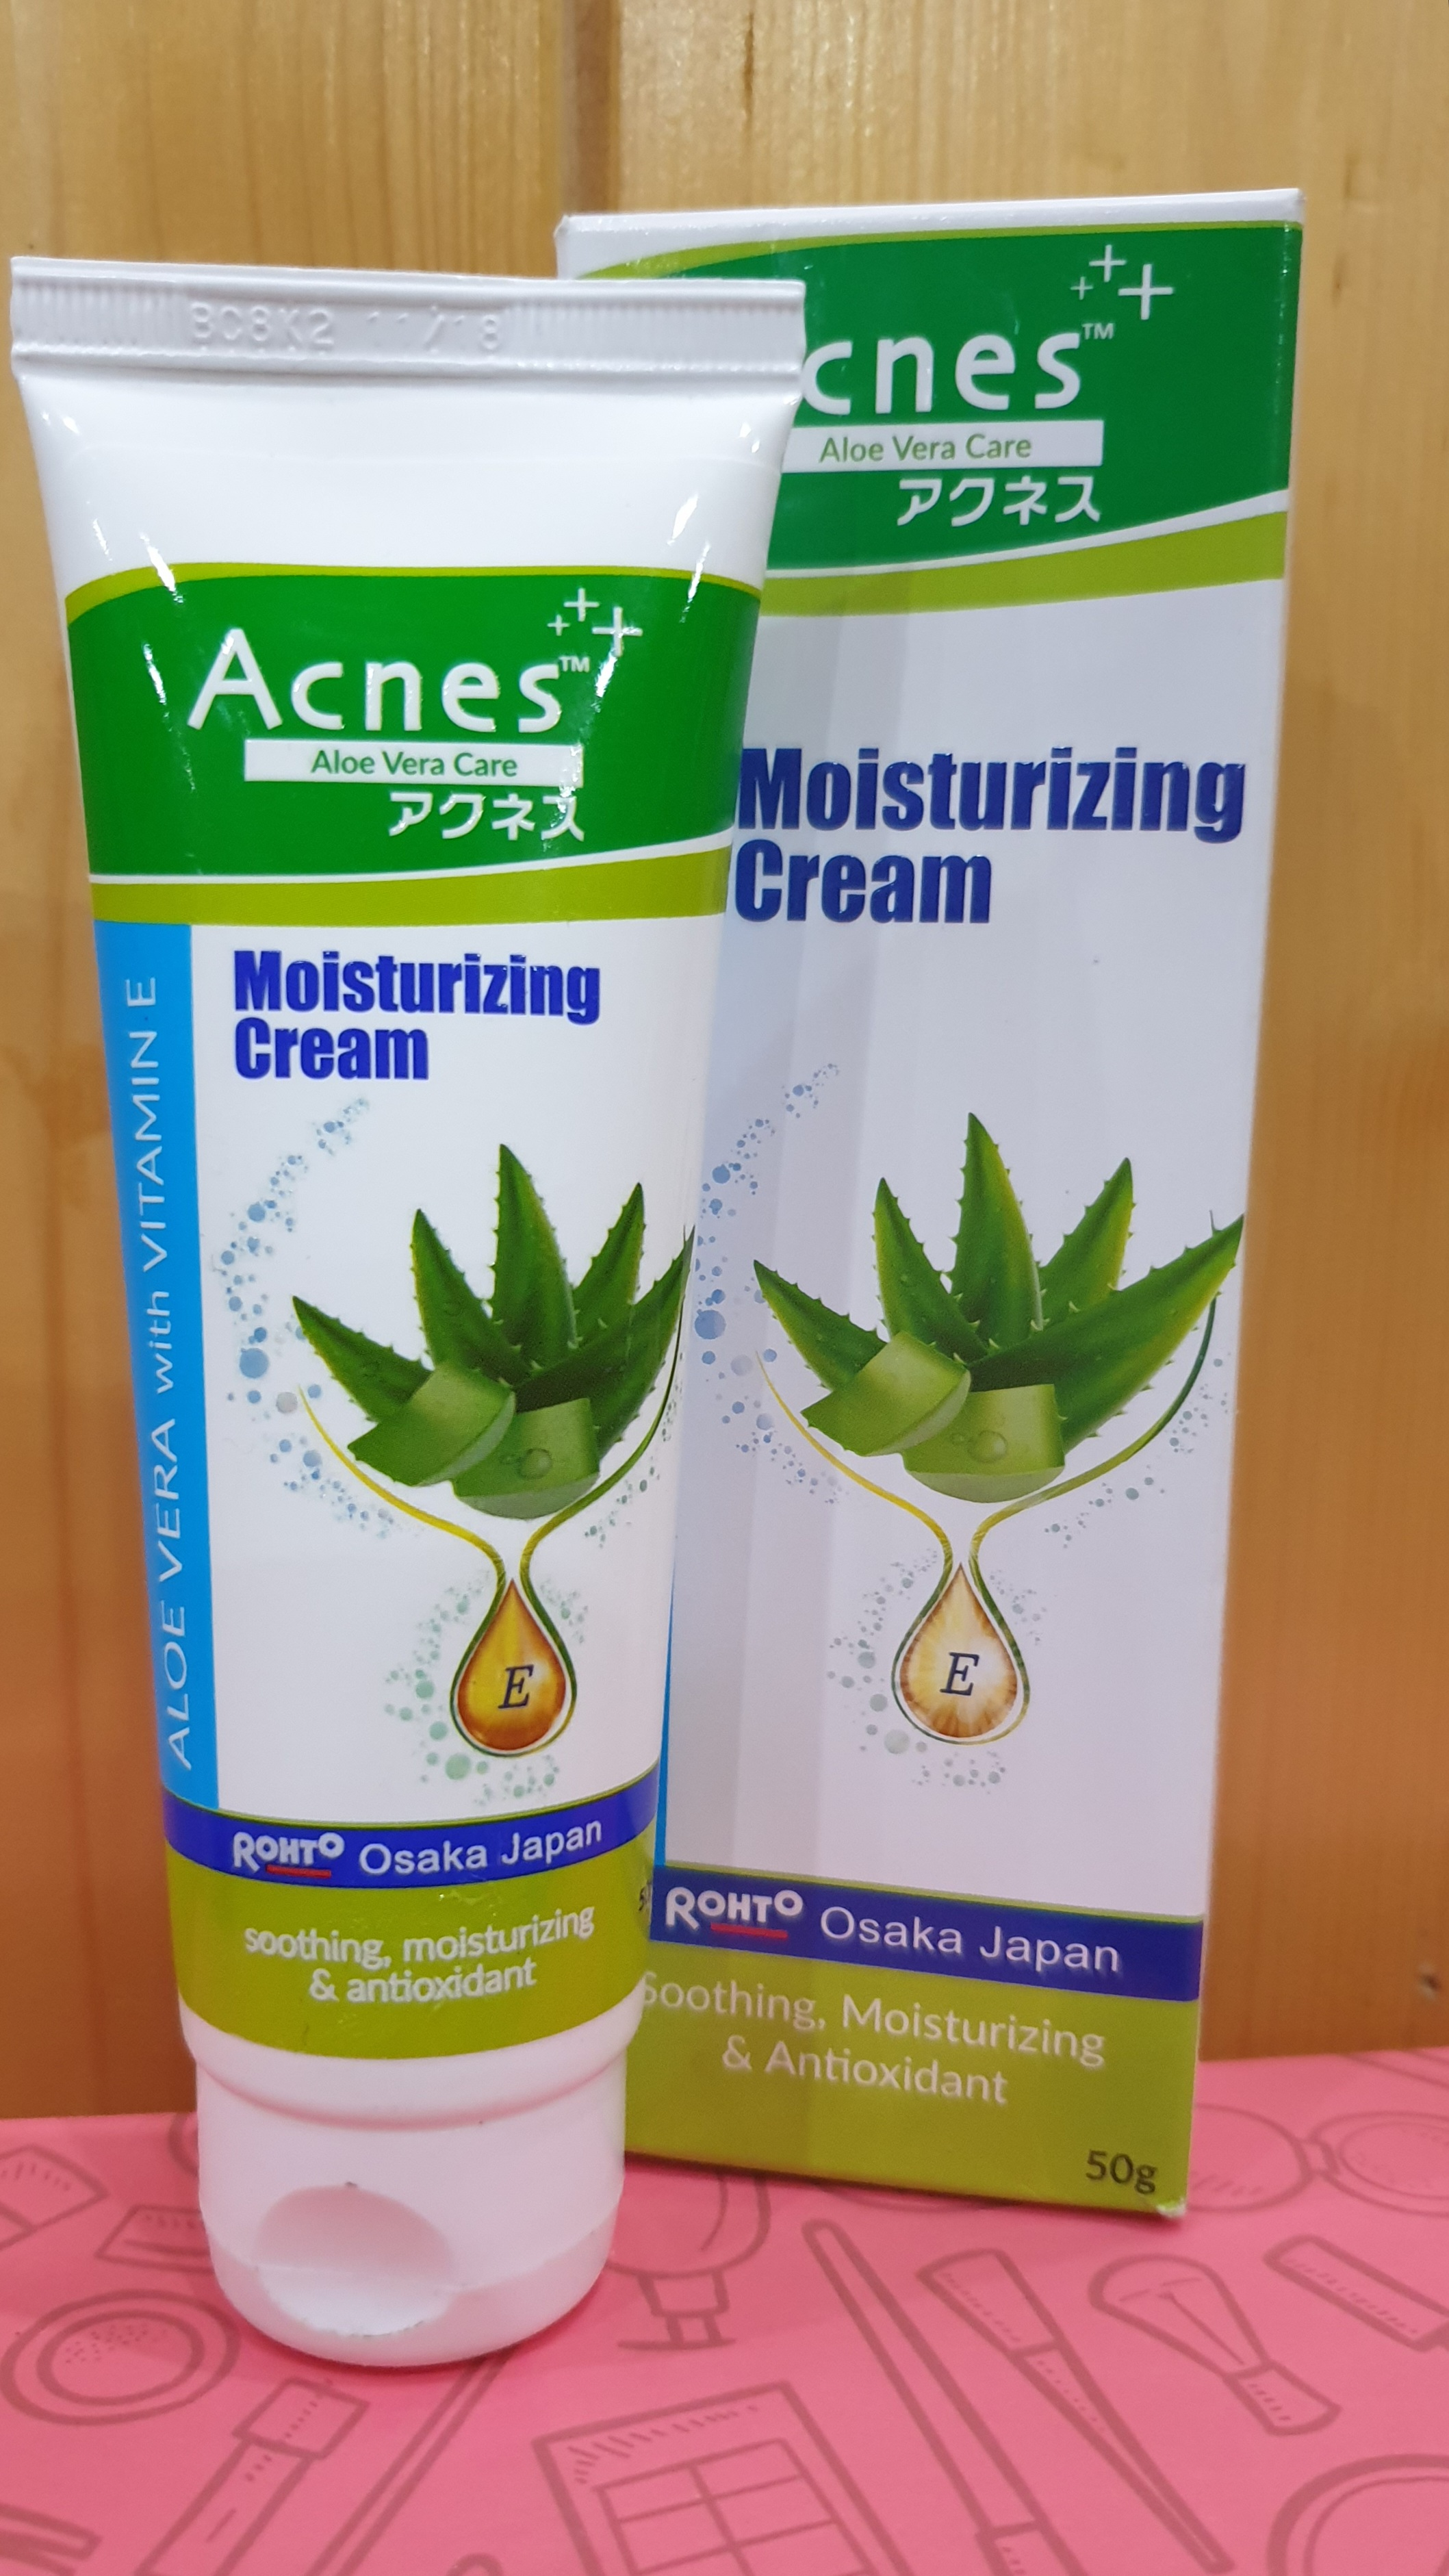 Acnes Aloe Vera With Vitamin E Moisturizing Cream-Perfect moisturizer!-By neha2026